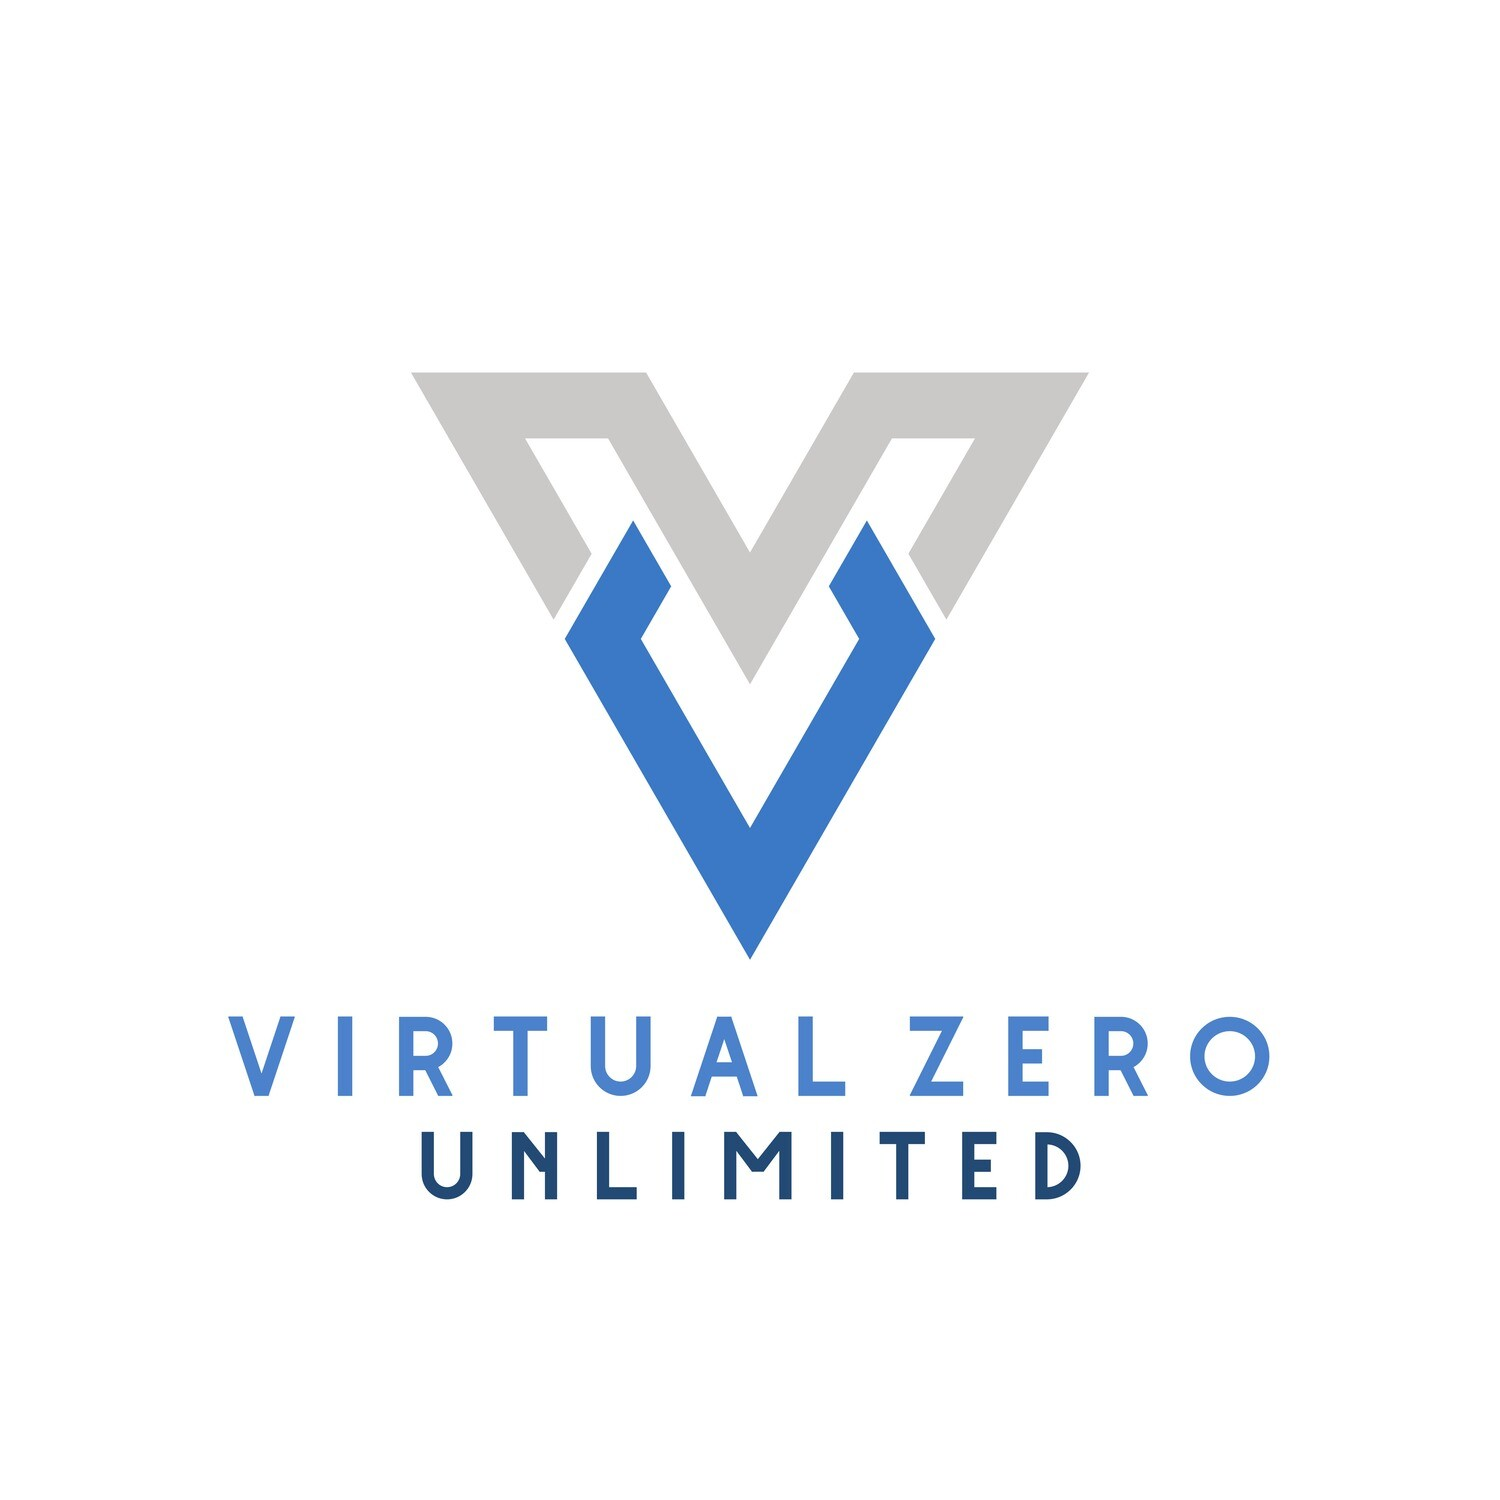 VIRTUAL ZERO UNLIMITED - READY2CONTROL